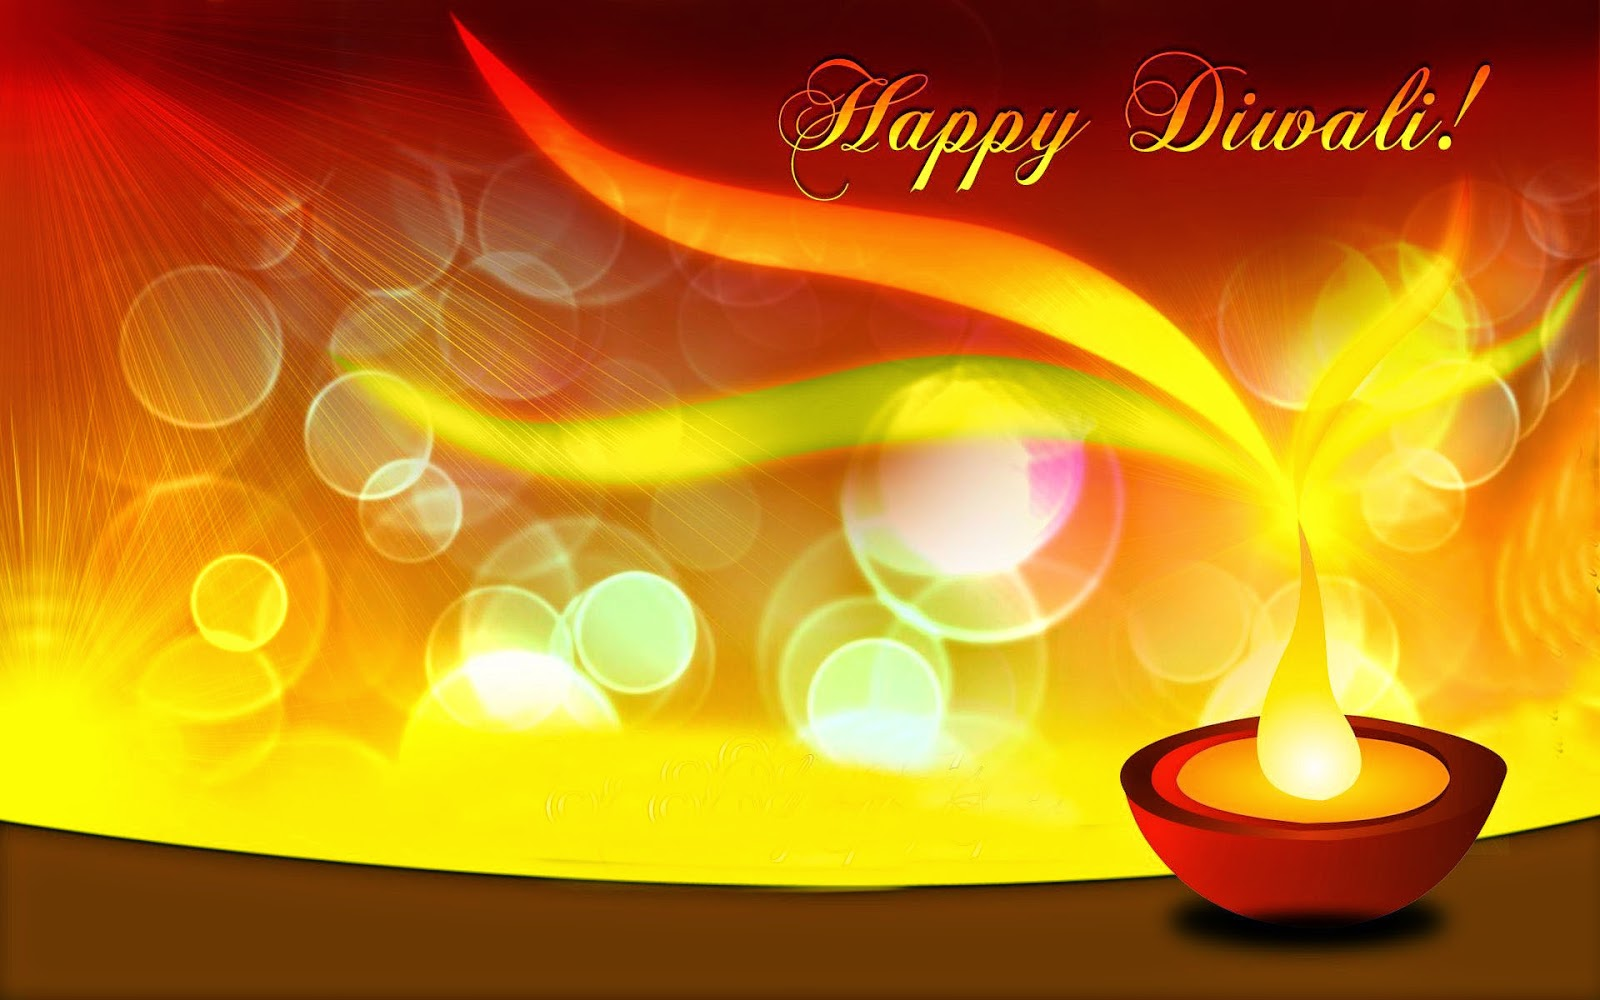 Diwali Wishes In Hindi 2018 Diwali Greetings And Messages In Hindi